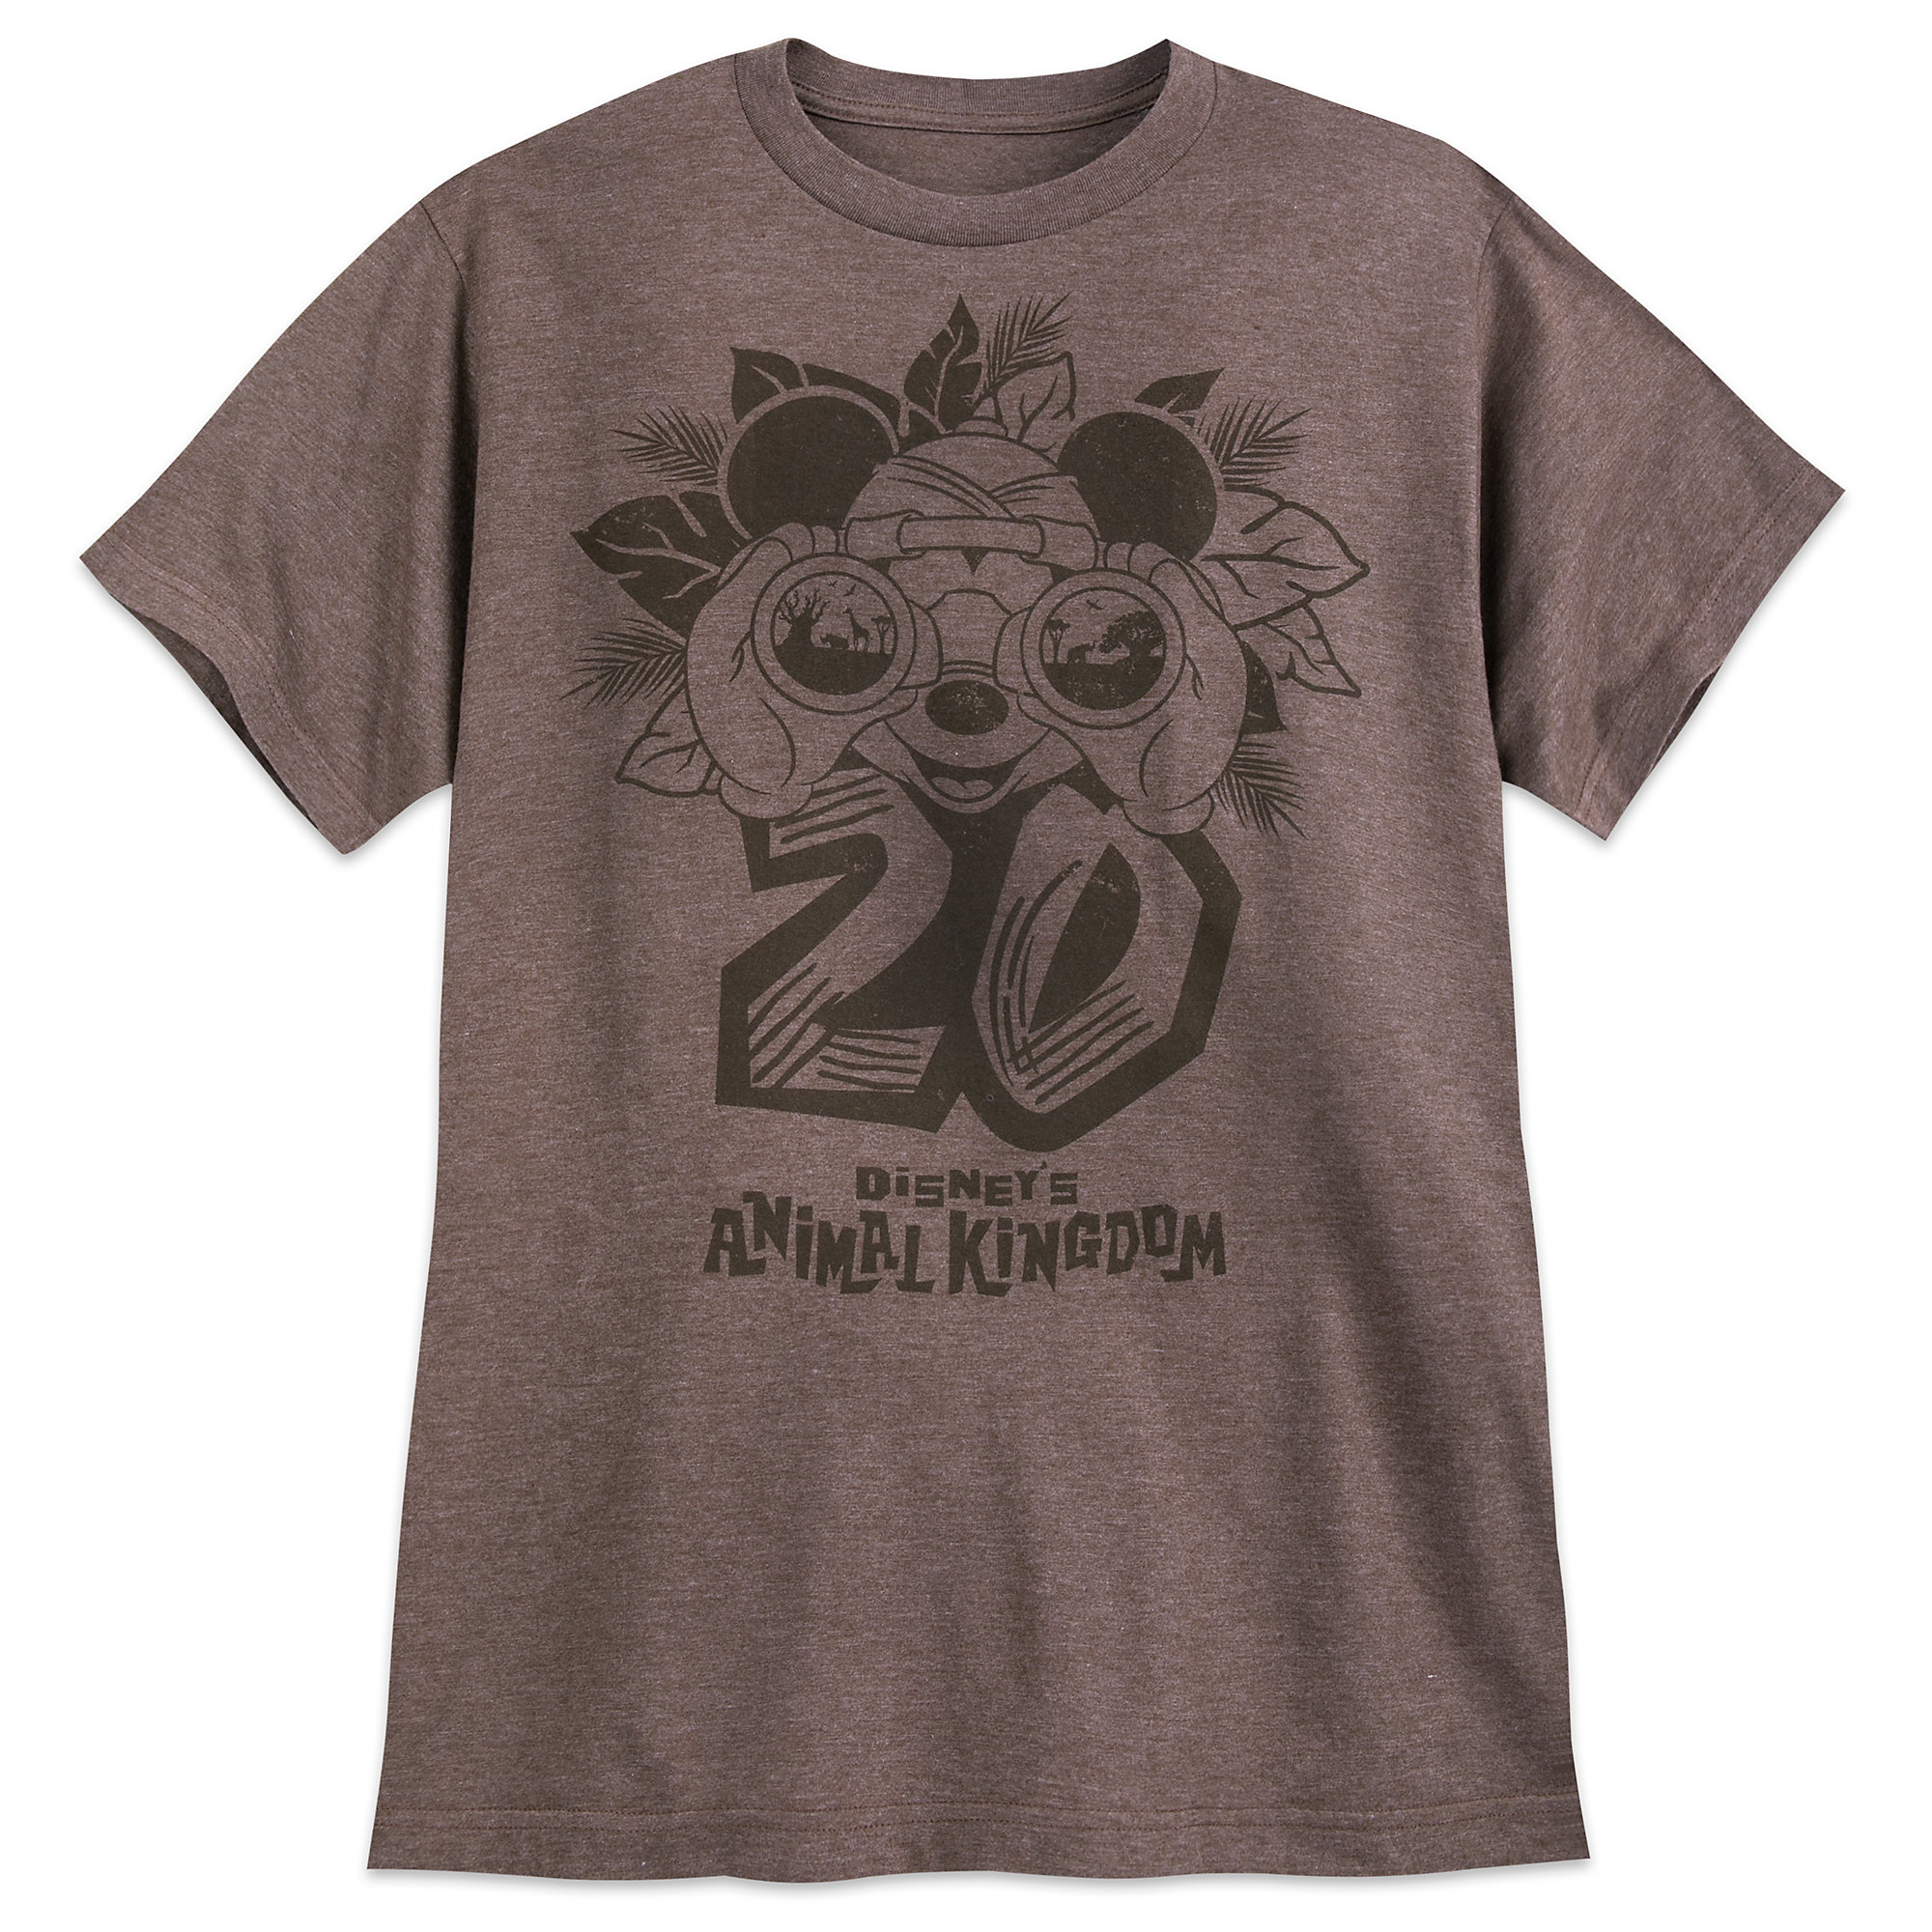 Mickey Mouse Disney's Animal Kingdom 20th Anniversary T-Shirt for Adults